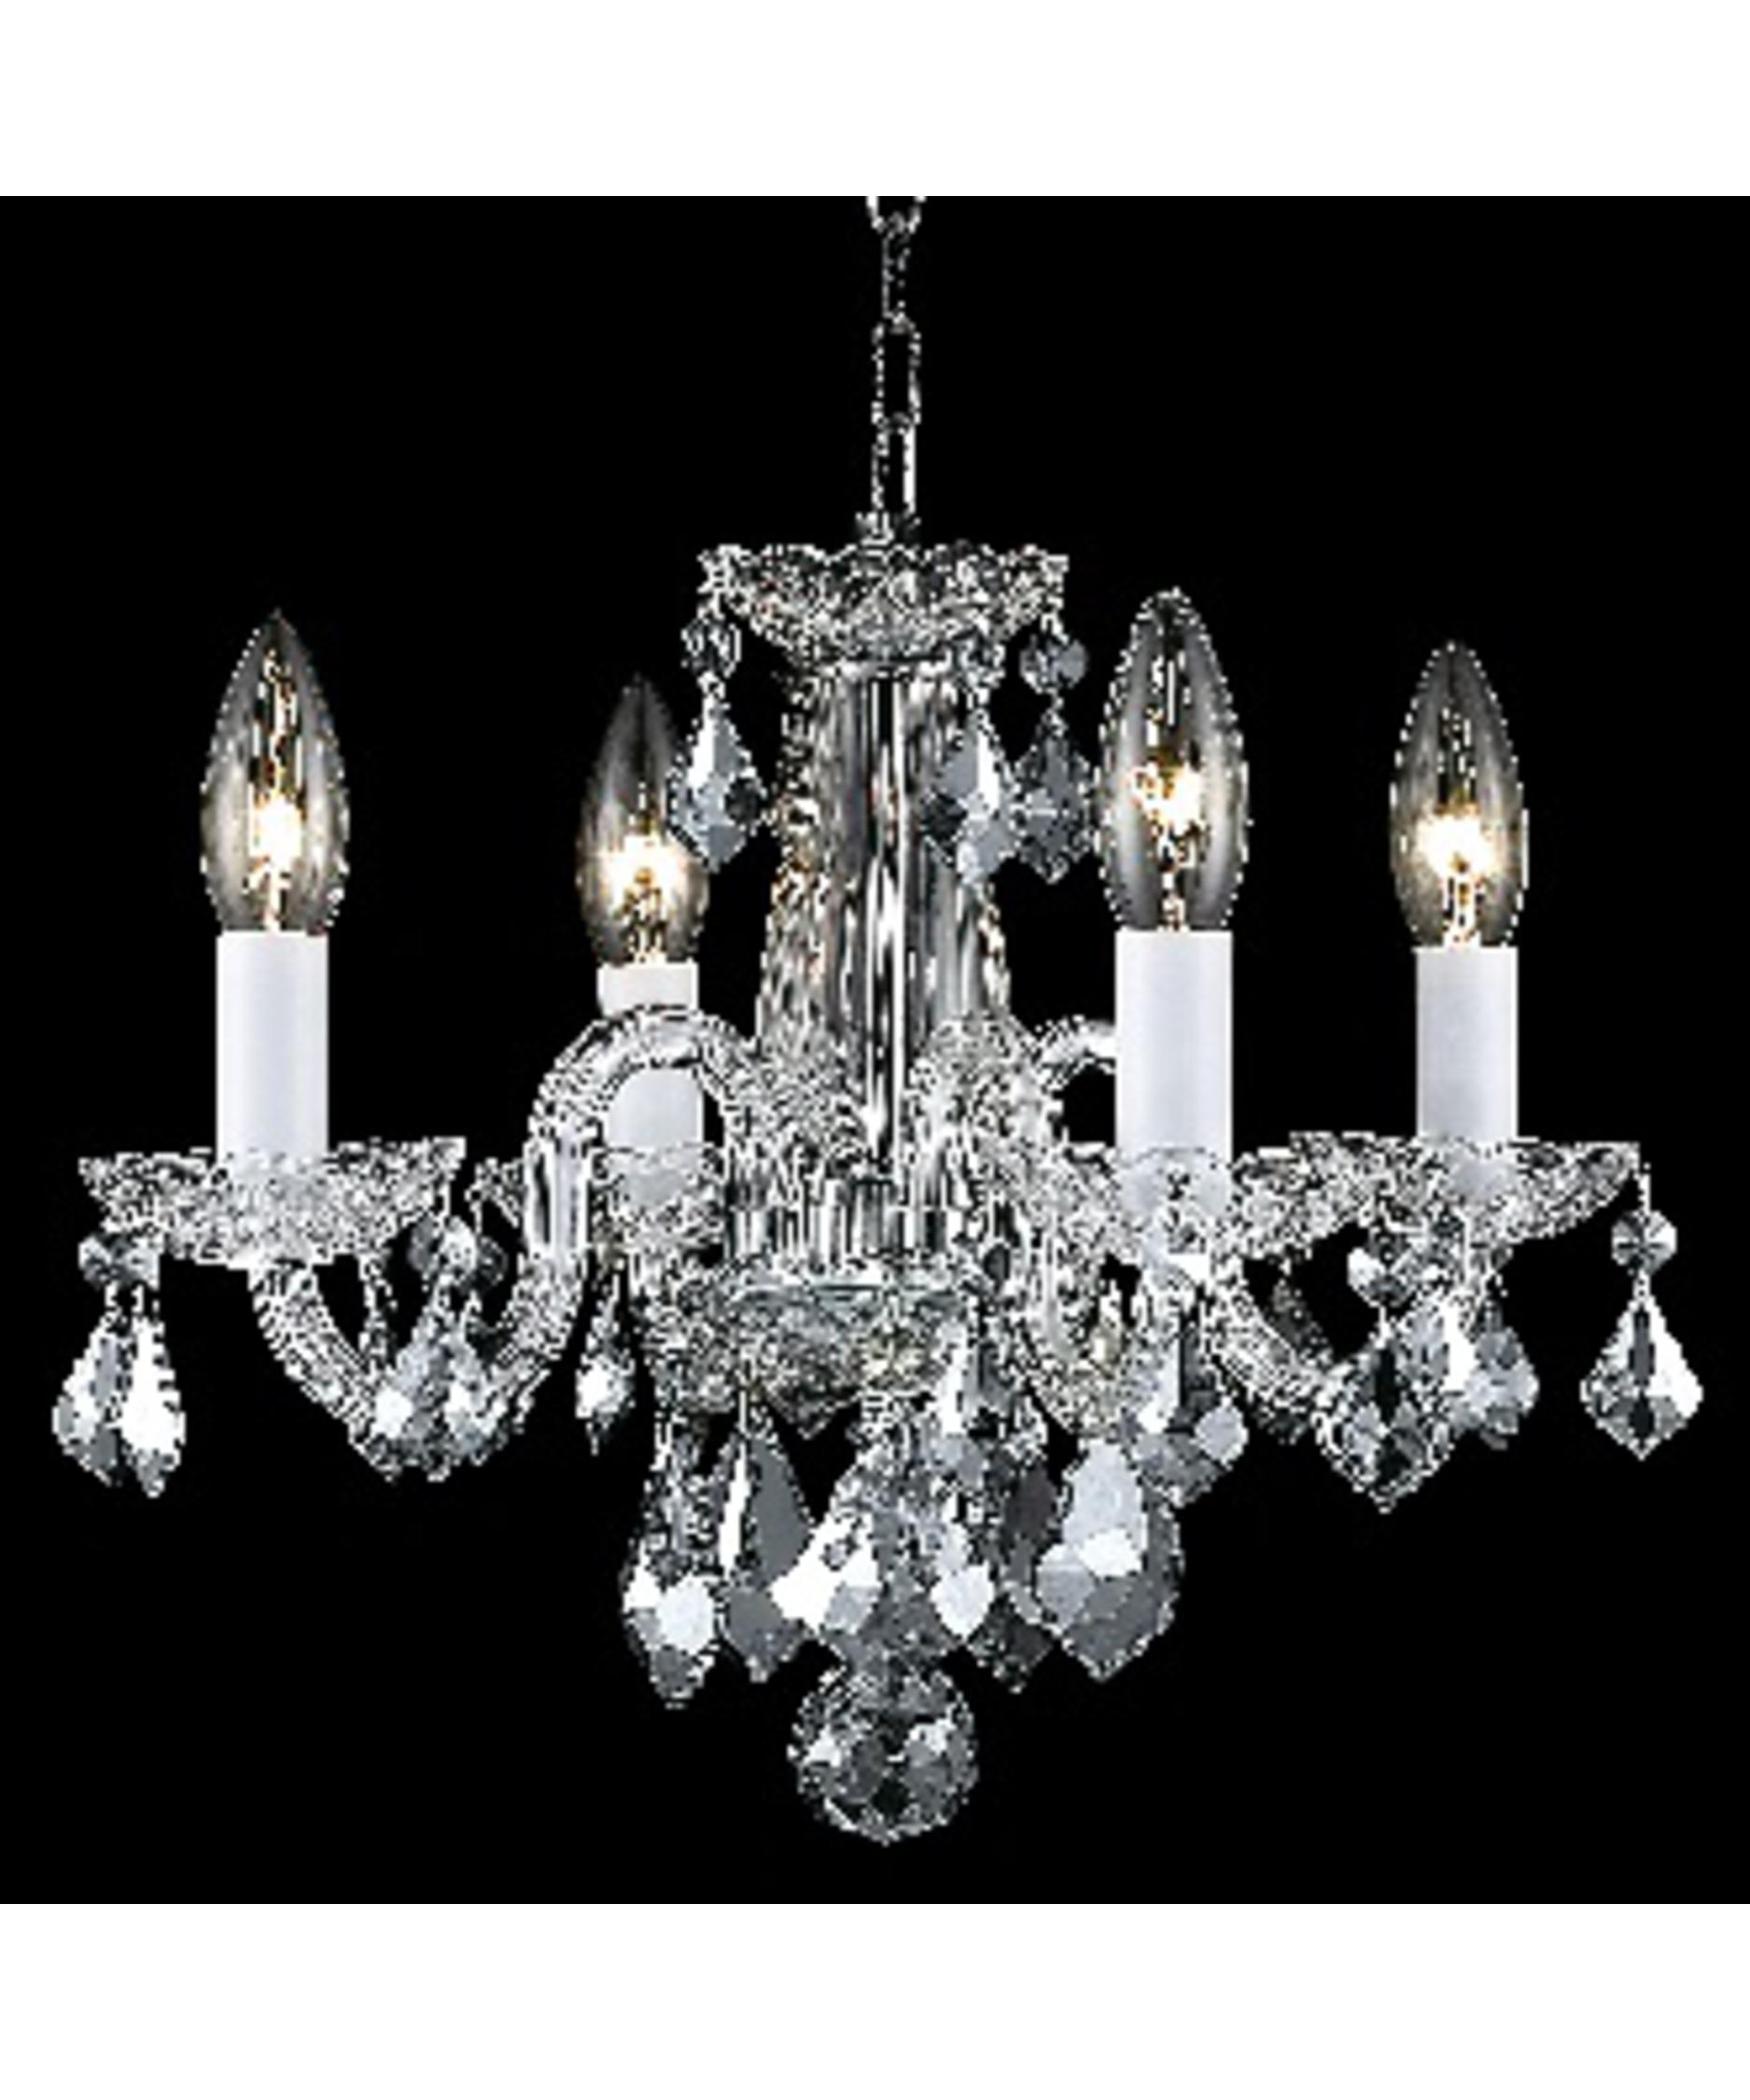 Elegant Lighting 7804d15 Rococo 15 Inch Wide 4 Light Mini Pertaining To Mini Crystal Chandeliers (View 22 of 25)